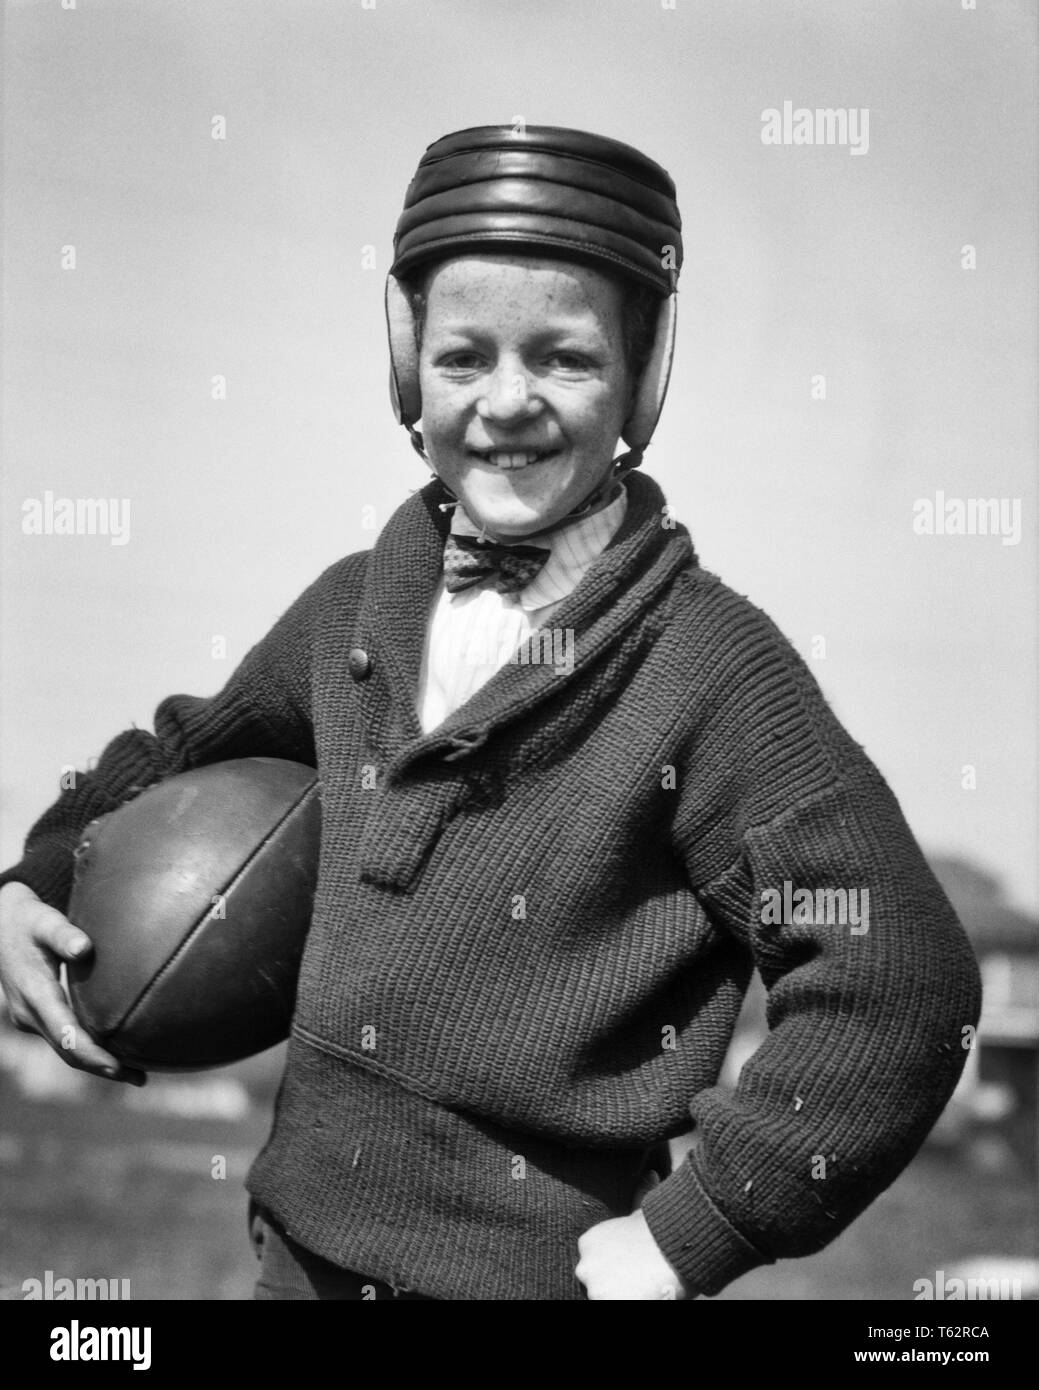 1920s SMILING FRECKLE FACE PRETEEN BOY WEARING EARLY LEATHER HELMET AND SHAWL-COLLAR SWEATER HOLDING FOOTBALL LOOKING AT CAMERA - b1806 HAR001 HARS FACIAL STYLE HEALTHY SAFETY LEADER COMPETITION ATHLETE RELAXING PLEASED JOY LIFESTYLE SATISFACTION CELEBRATION READY RURAL HEALTHINESS HOME LIFE ATHLETICS COPY SPACE HALF-LENGTH PHYSICAL FITNESS INSPIRATION MALES ATHLETIC ROUGH CONFIDENCE EXPRESSIONS B&W EYE CONTACT GOALS SUCCESS SKILL ACTIVITY AMUSEMENT HAPPINESS PHYSICAL CHEERFUL EARLY HOBBY PROTECTION STRENGTH STYLES VICTORY STRATEGY COURAGE INTEREST AND CHAMPION CHOICE EXCITEMENT HOBBIES - Stock Image